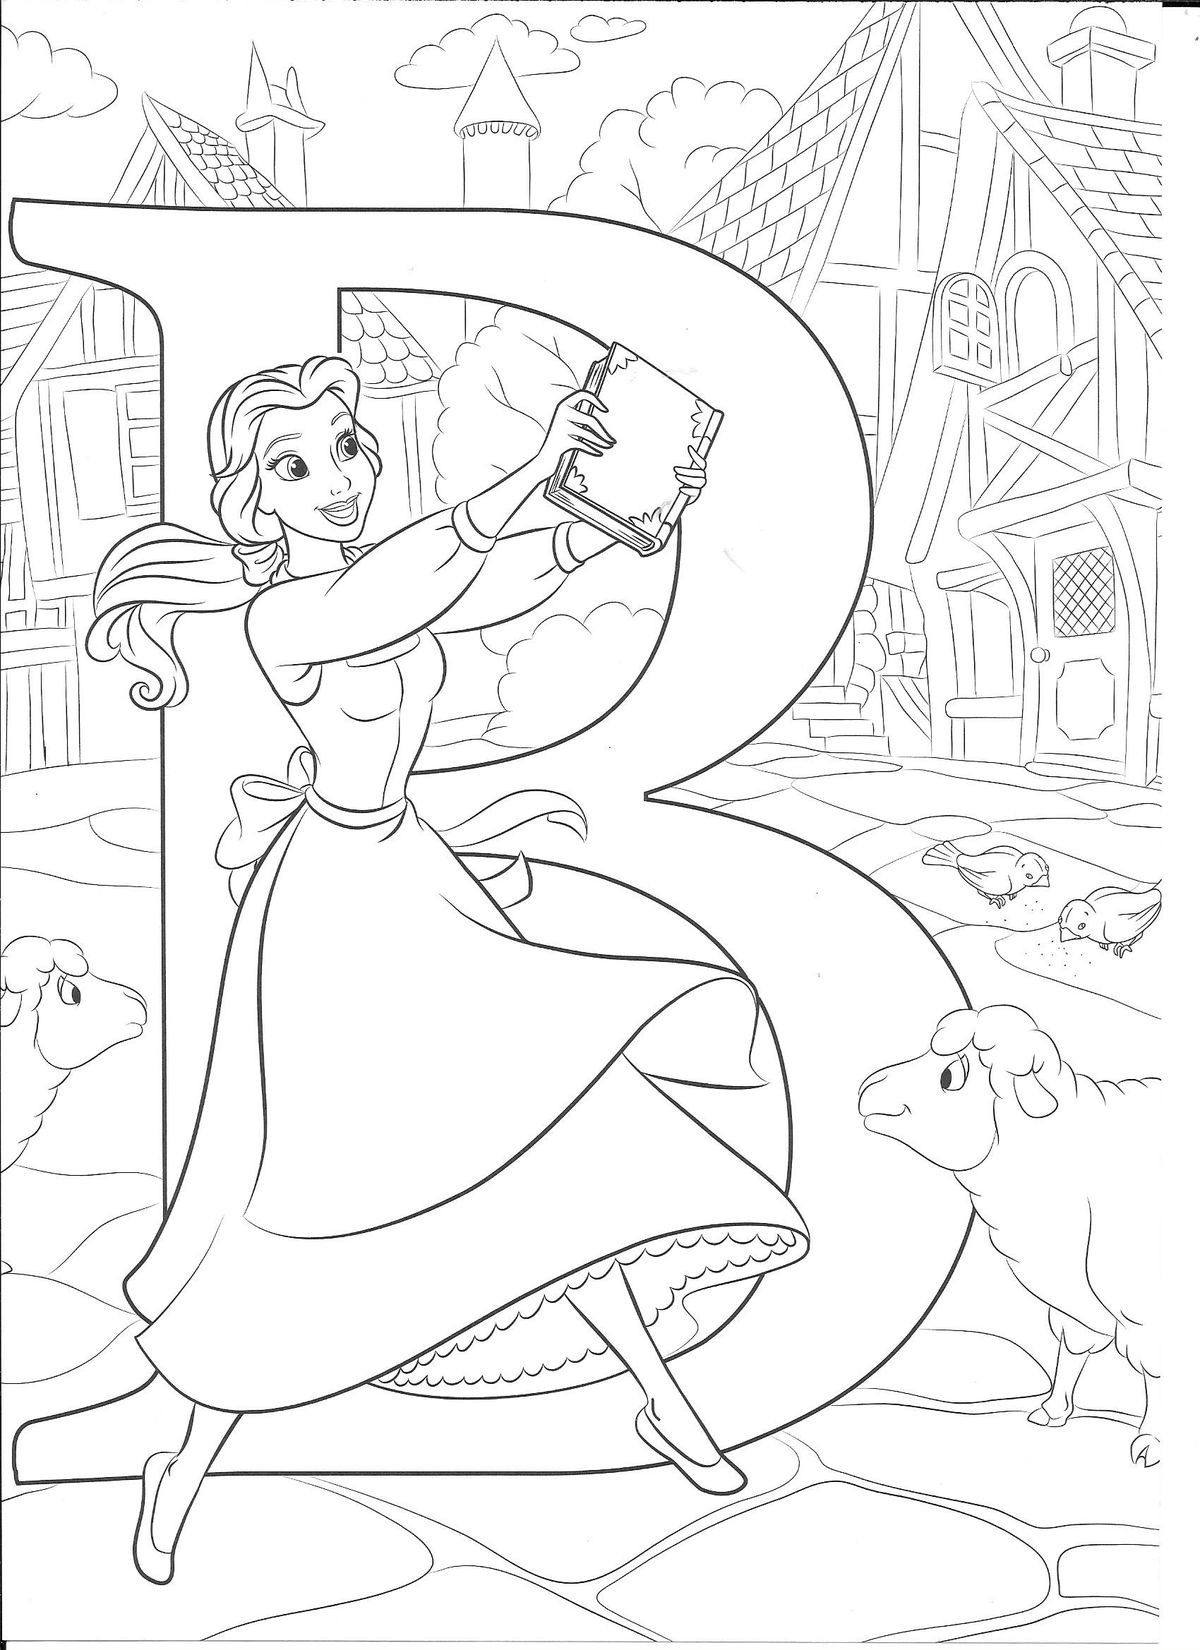 Pin By Mini On Alphabet Coloring Sheets Belle Coloring Pages Disney Princess Coloring Pages Disney Coloring Sheets